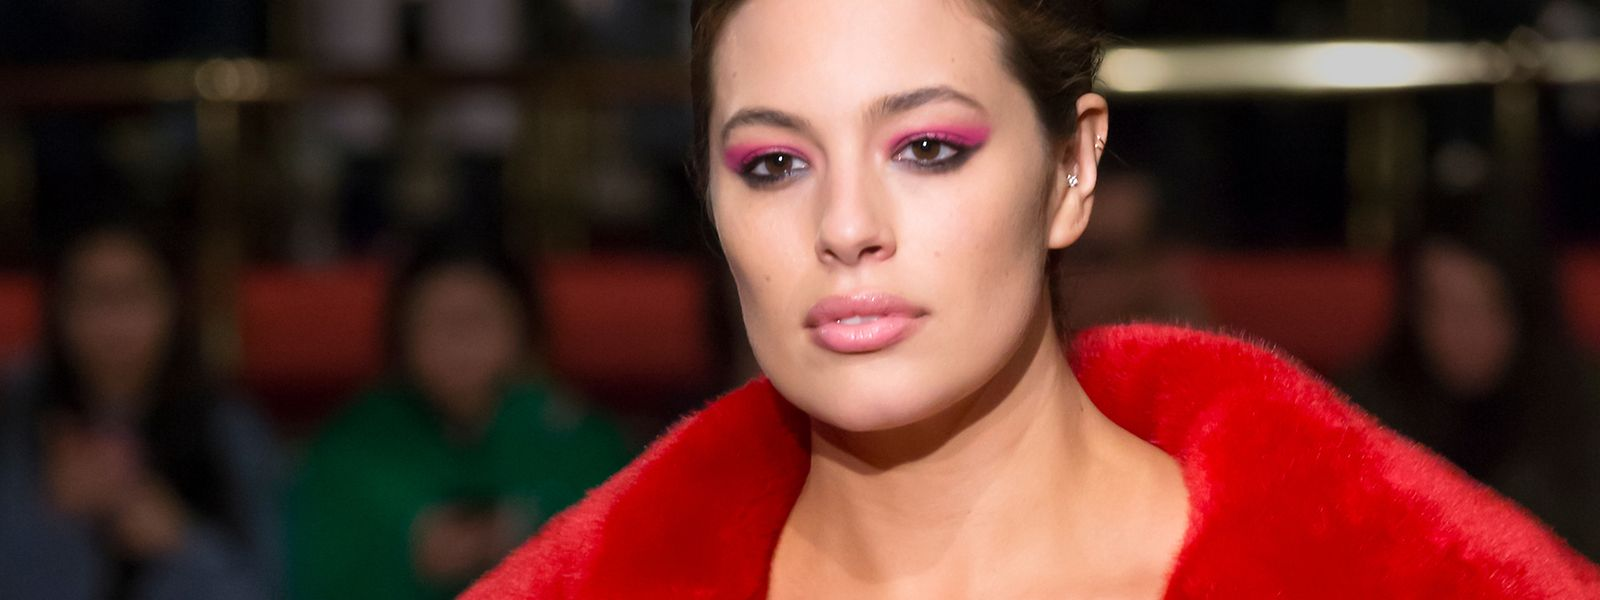 Oversize-Model Ashley Graham – hier zu sehen auf der New York Fashion Week – liefert den Beweis, dass Designermode auch jenseits von Größe 36 noch fantastisch aussehen kann.